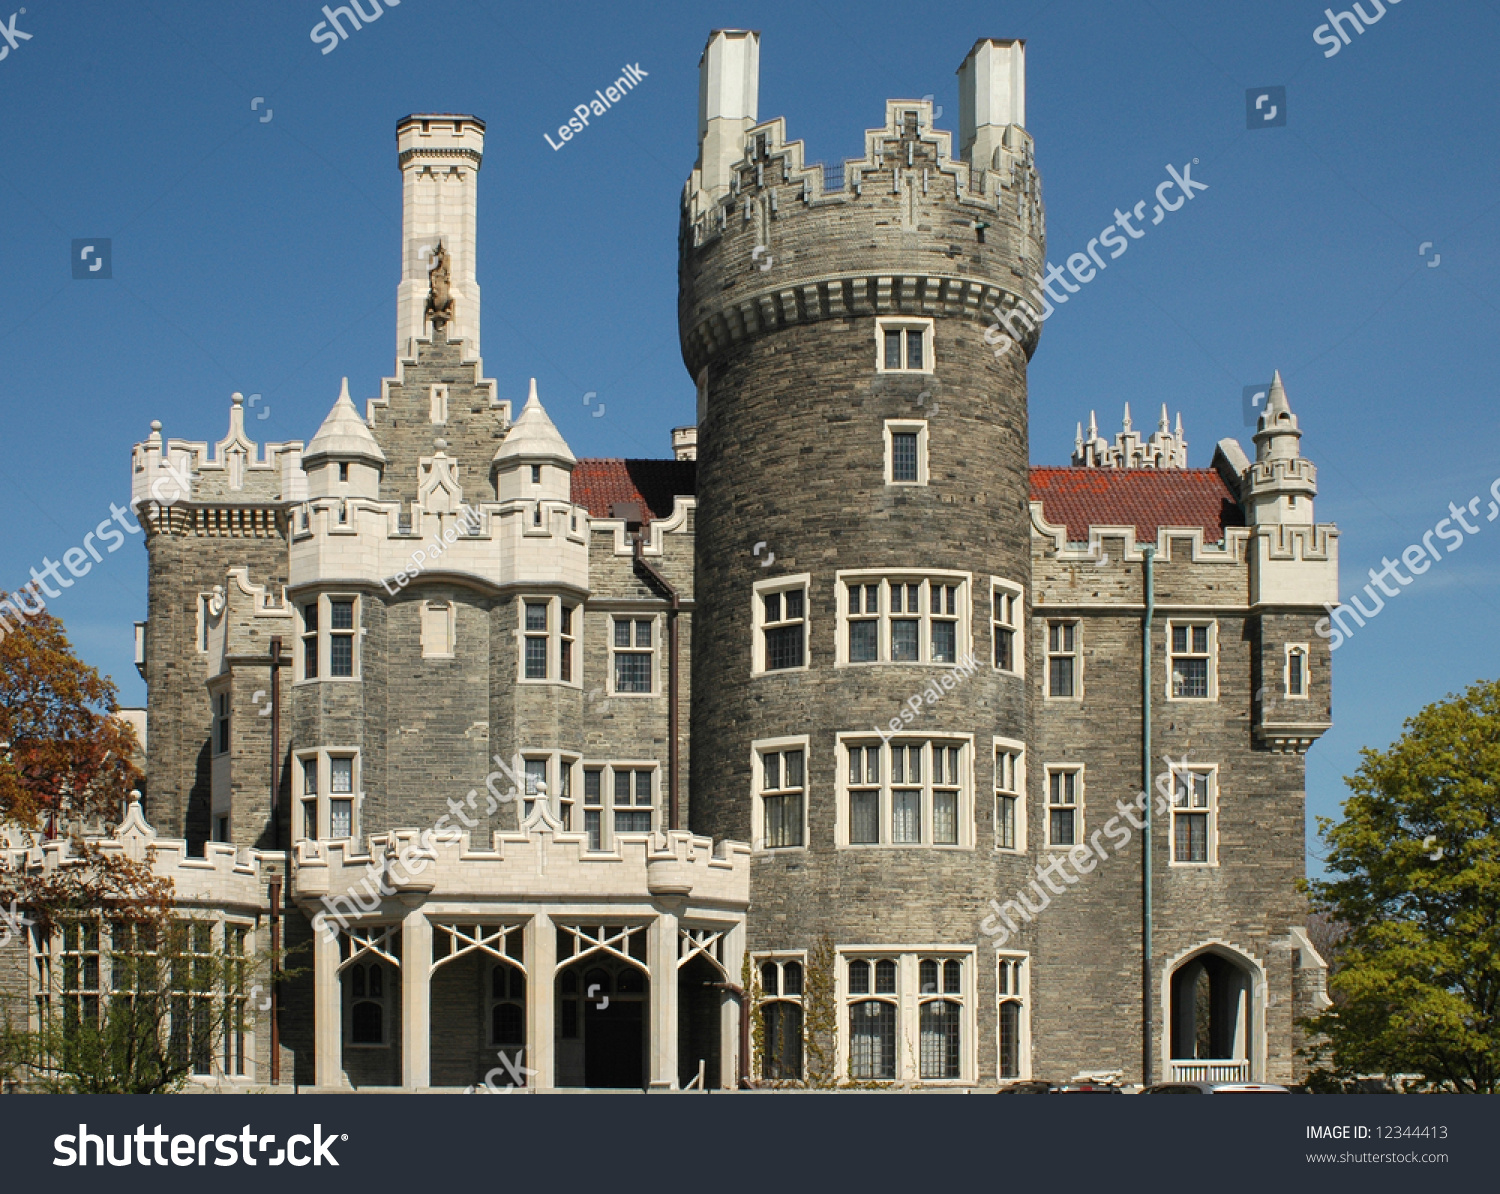 Casa loma castle in toronto stock photo 12344413 for Casa loma mansion toronto